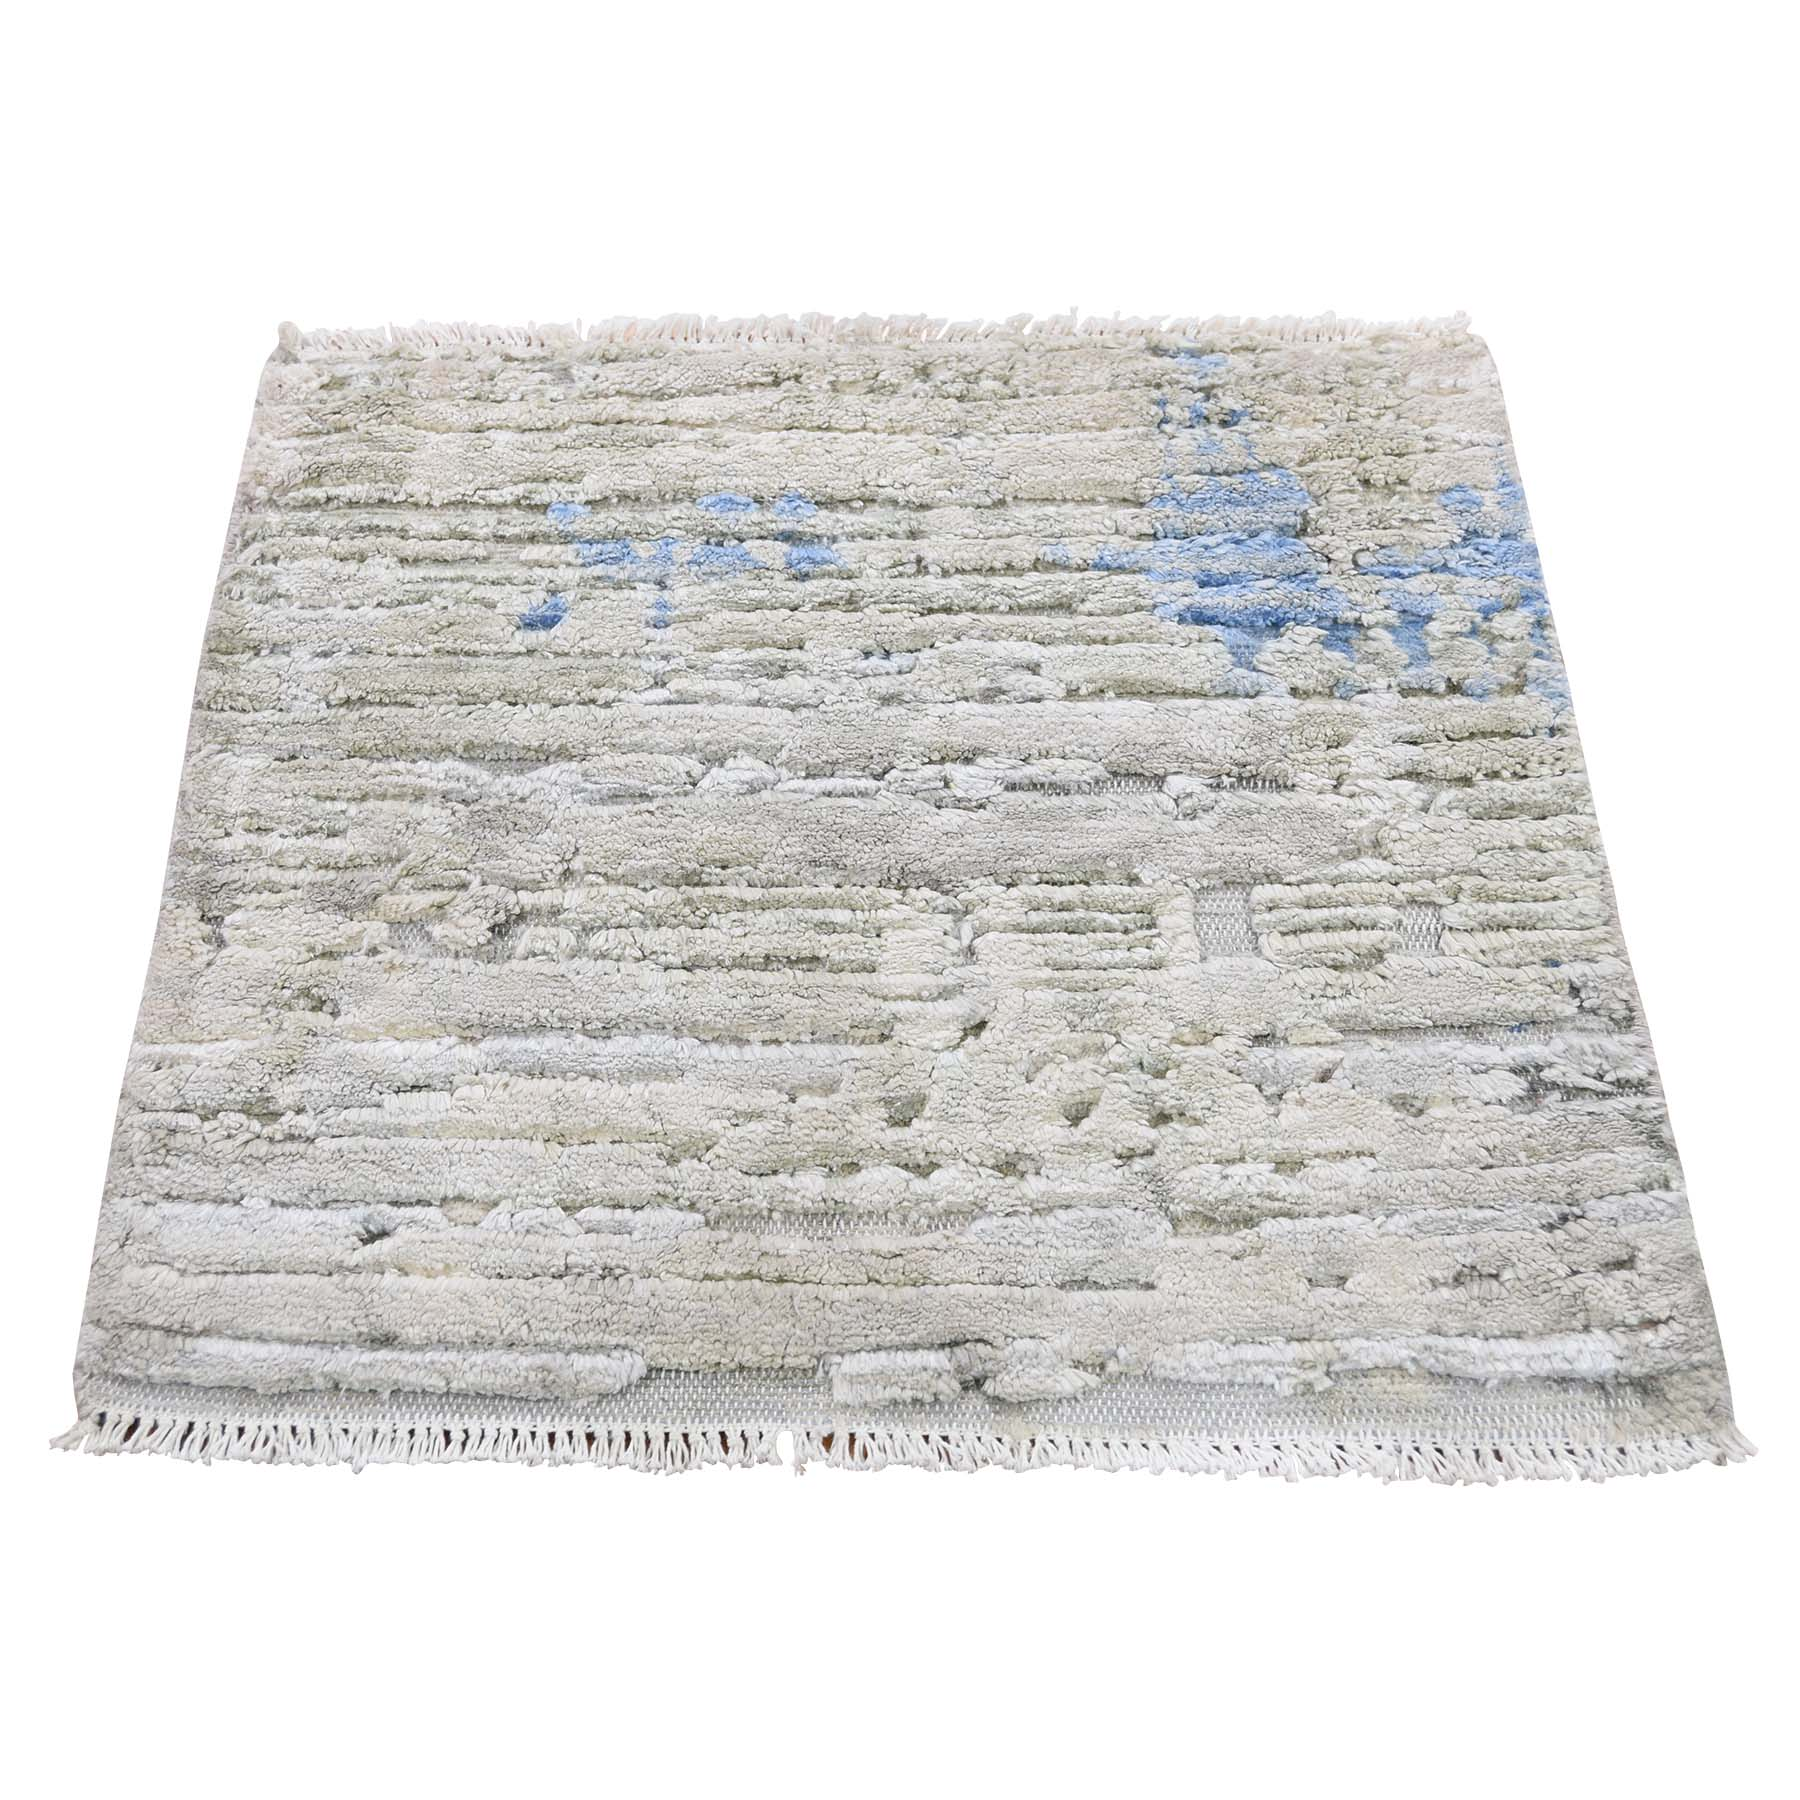 2'X2' Sampler Textured Pure Silk With Textured Wool Hand-Knotted Oriental Rug moad67c0